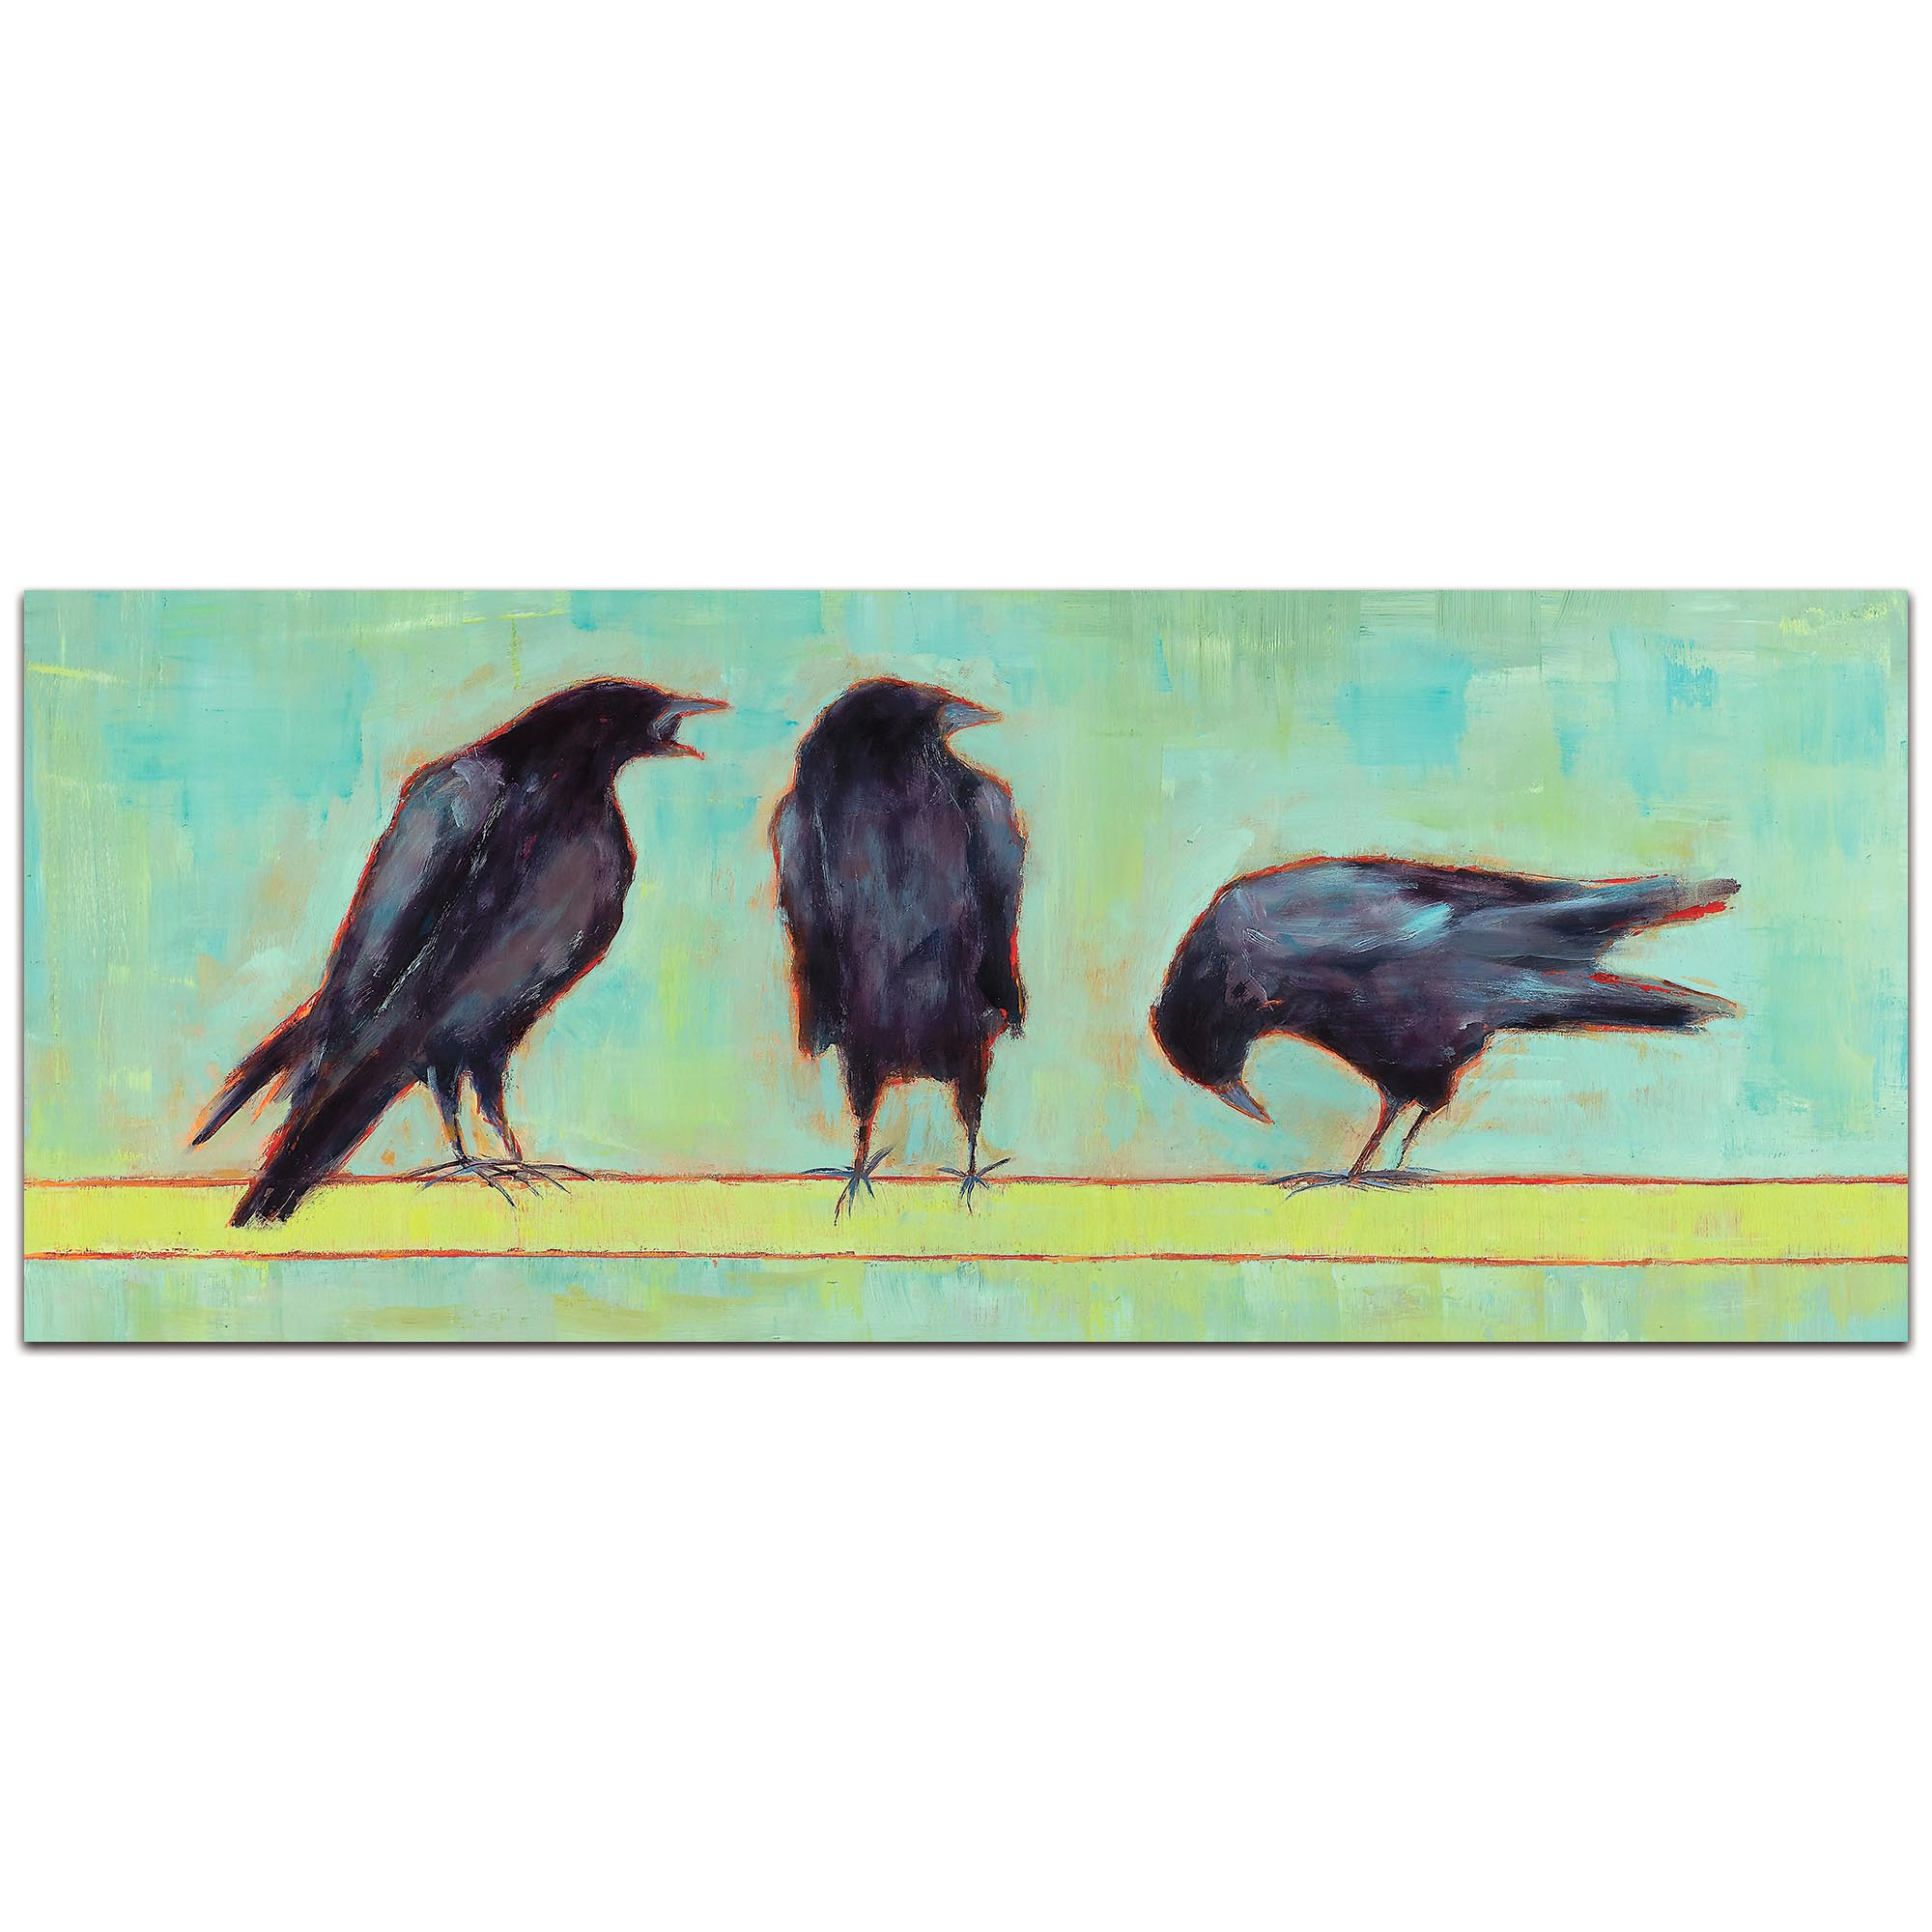 Contemporary Wall Art 'Crow Bar 1 v2' - Urban Birds Decor on Metal or Plexiglass